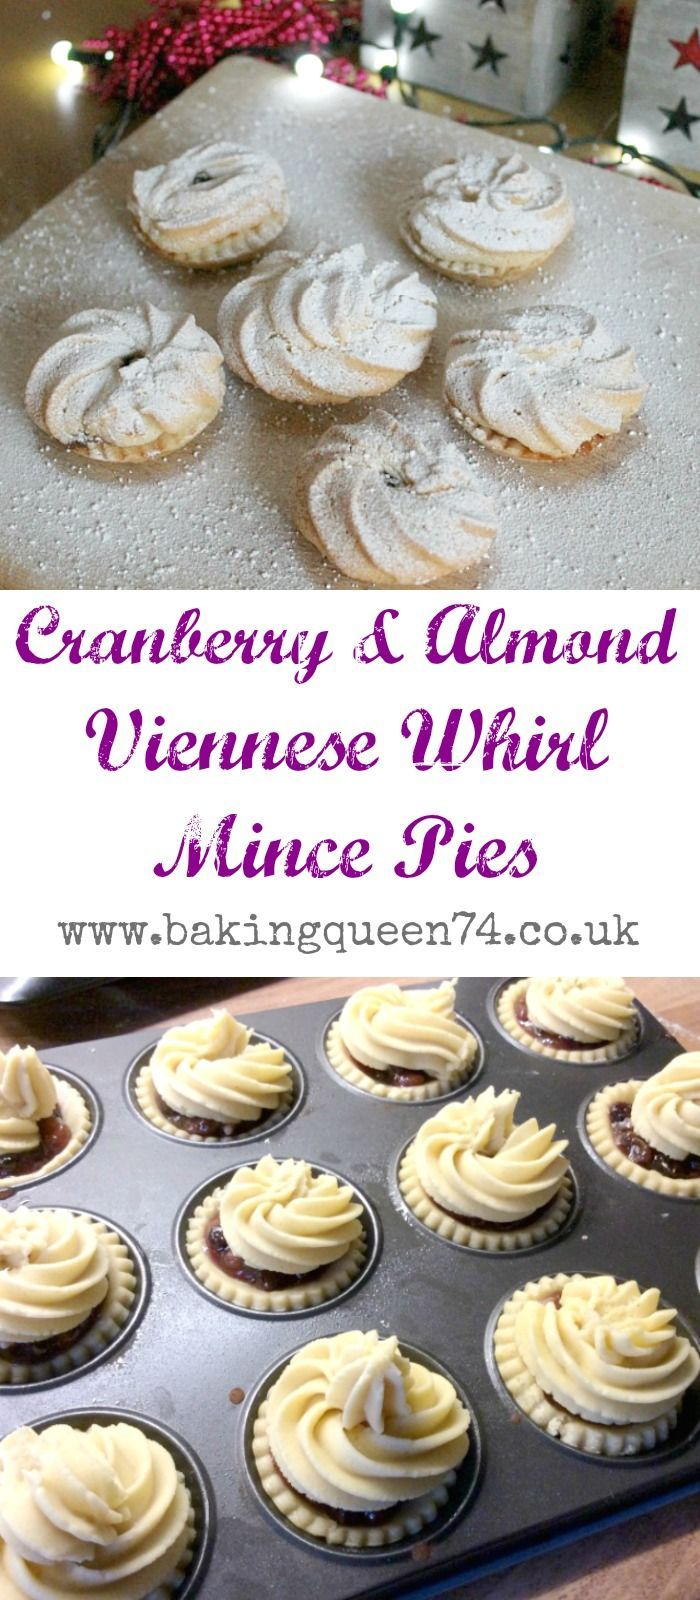 Cranberry and Almond Viennese Whirl Mince Pies - a lovely Christmas bake